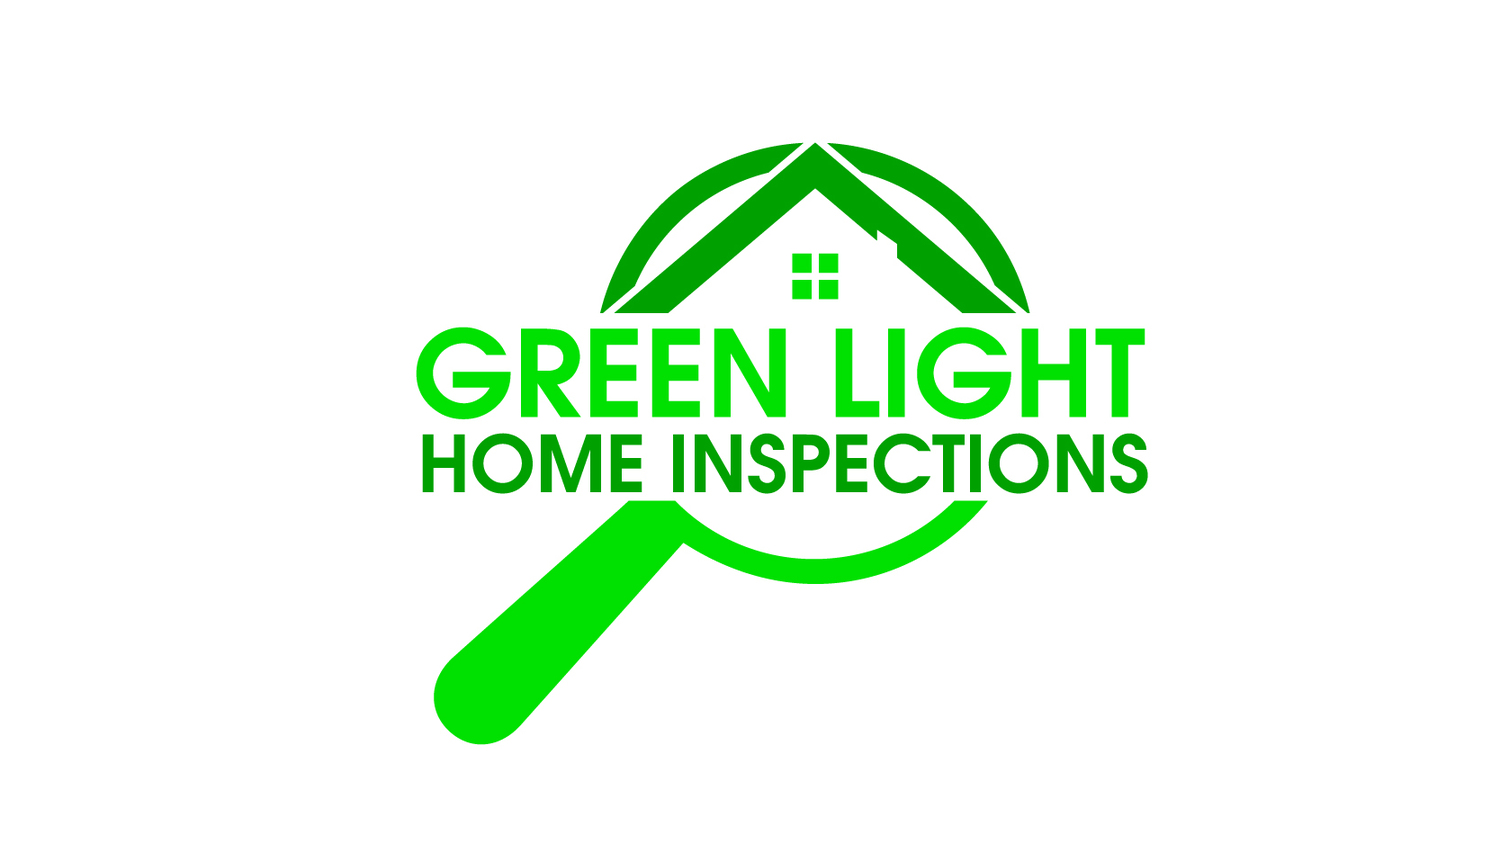 Green light home inspections aa rev 01 finalfile 01